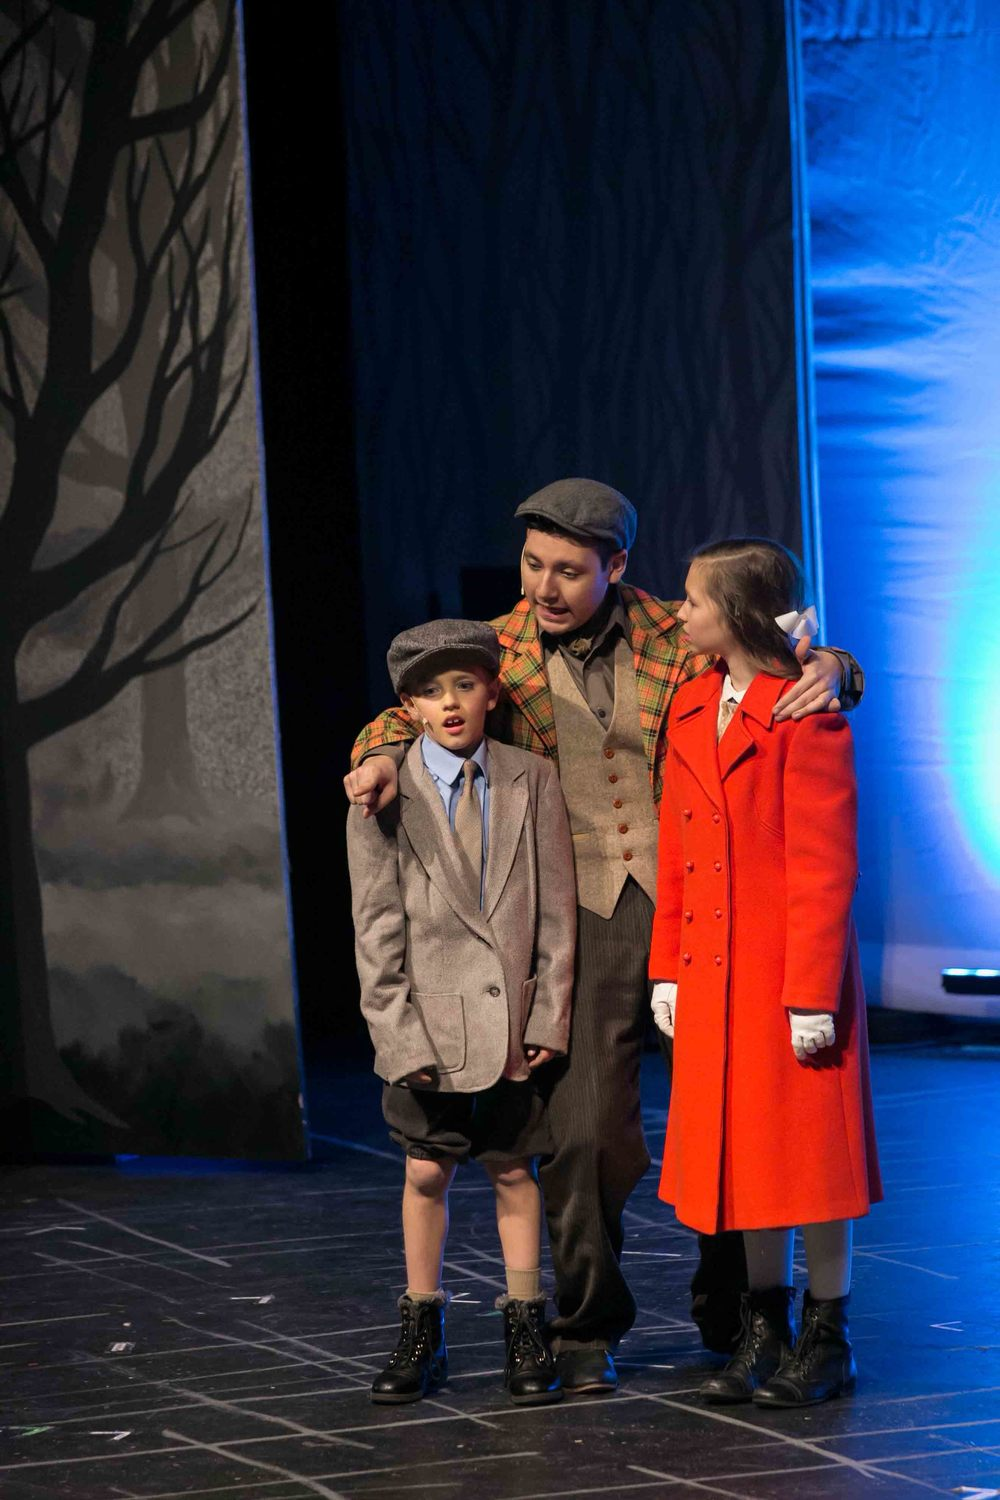 2-4-16 Mary Poppins Proper Cast 0235.jpg